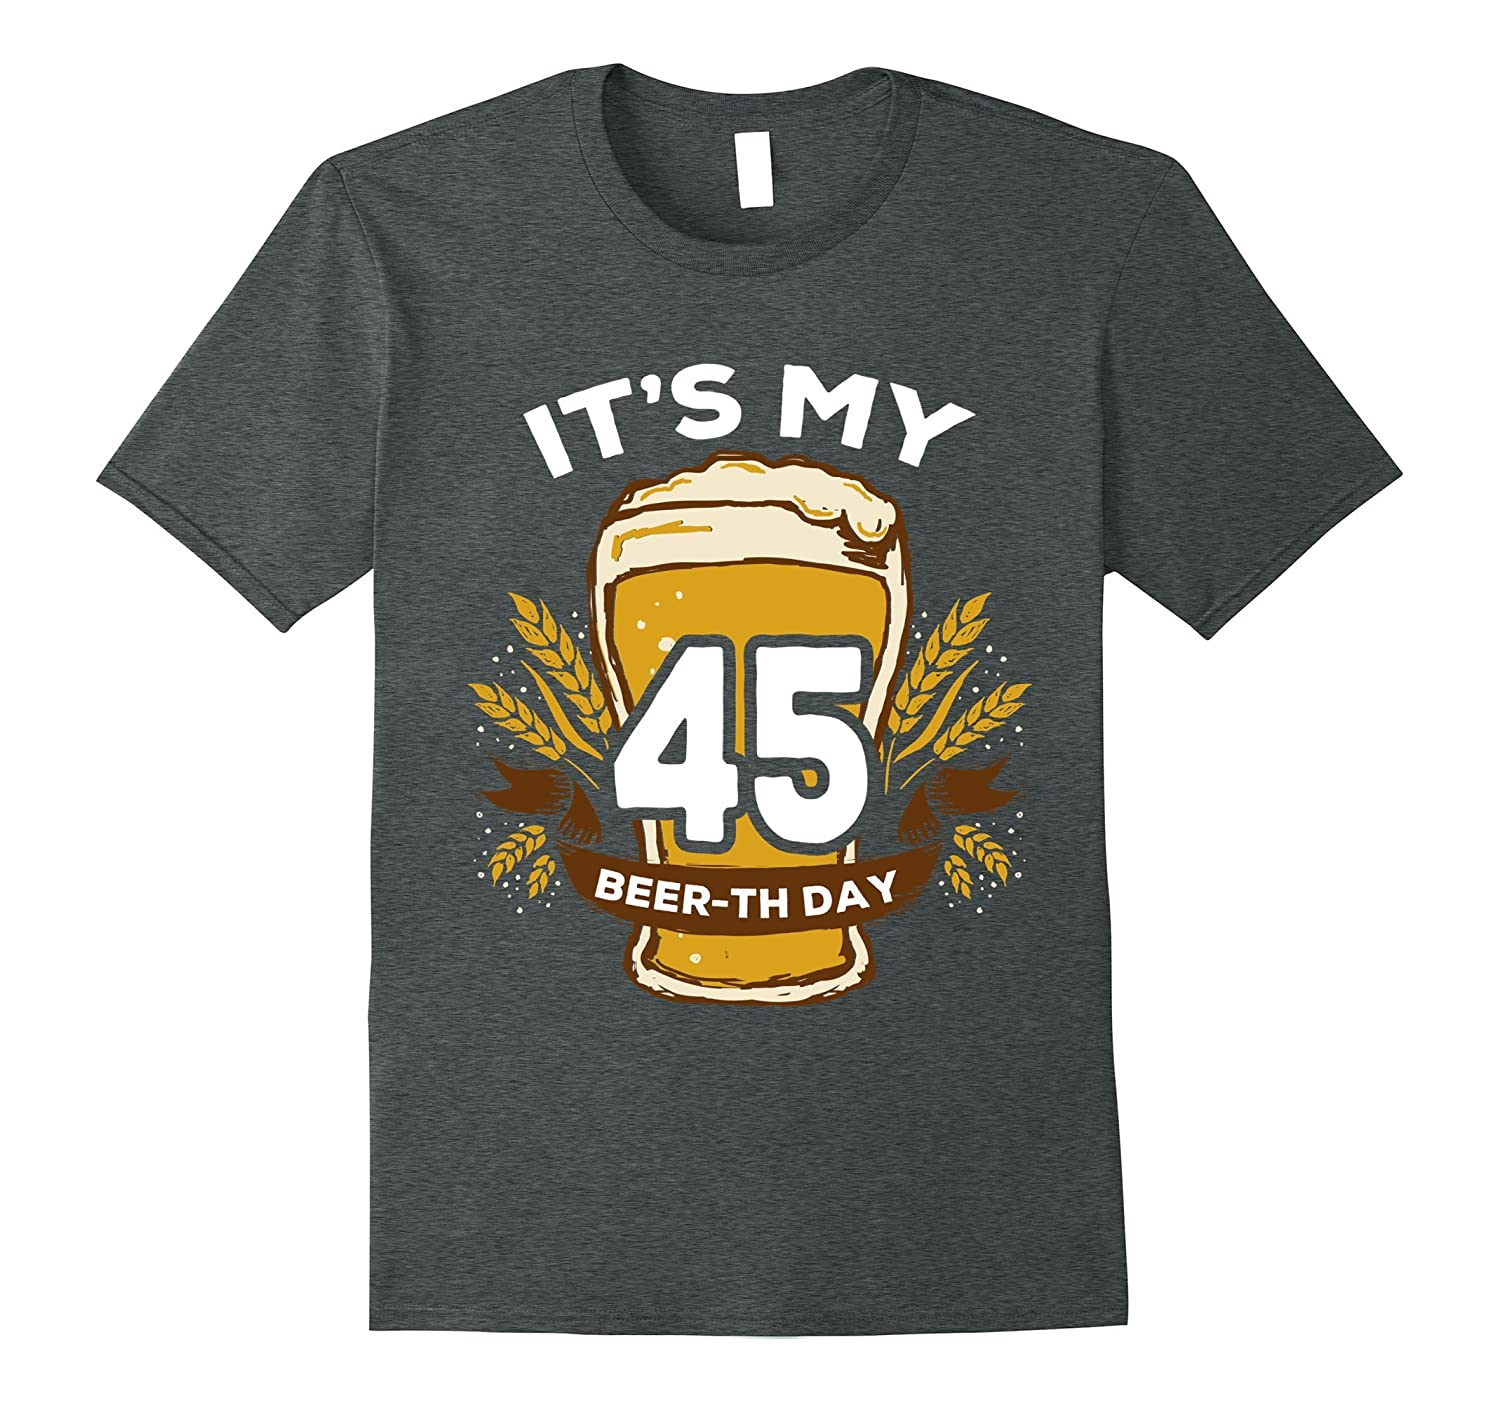 45th Birthday Gift Beer Shirt It's My 45 Beer-th Day T-Shirt